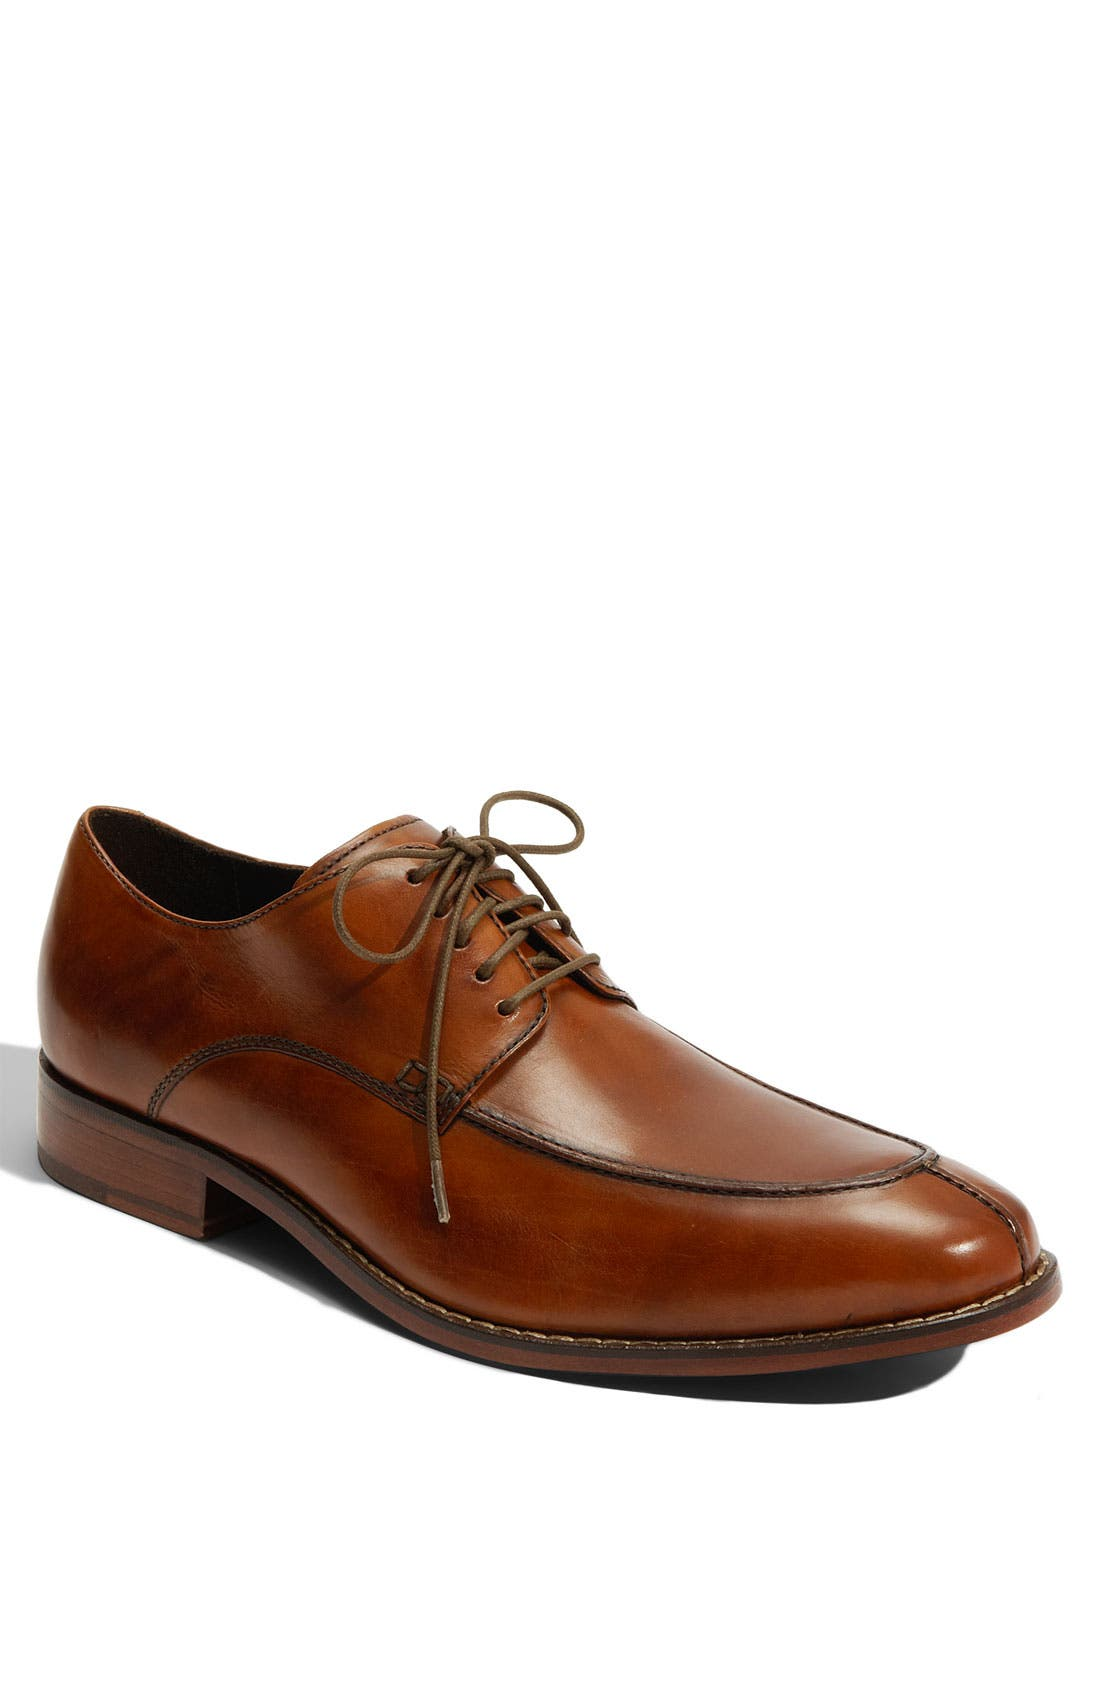 Alternate Image 1 Selected - Cole Haan 'Air Colton Split' Oxford